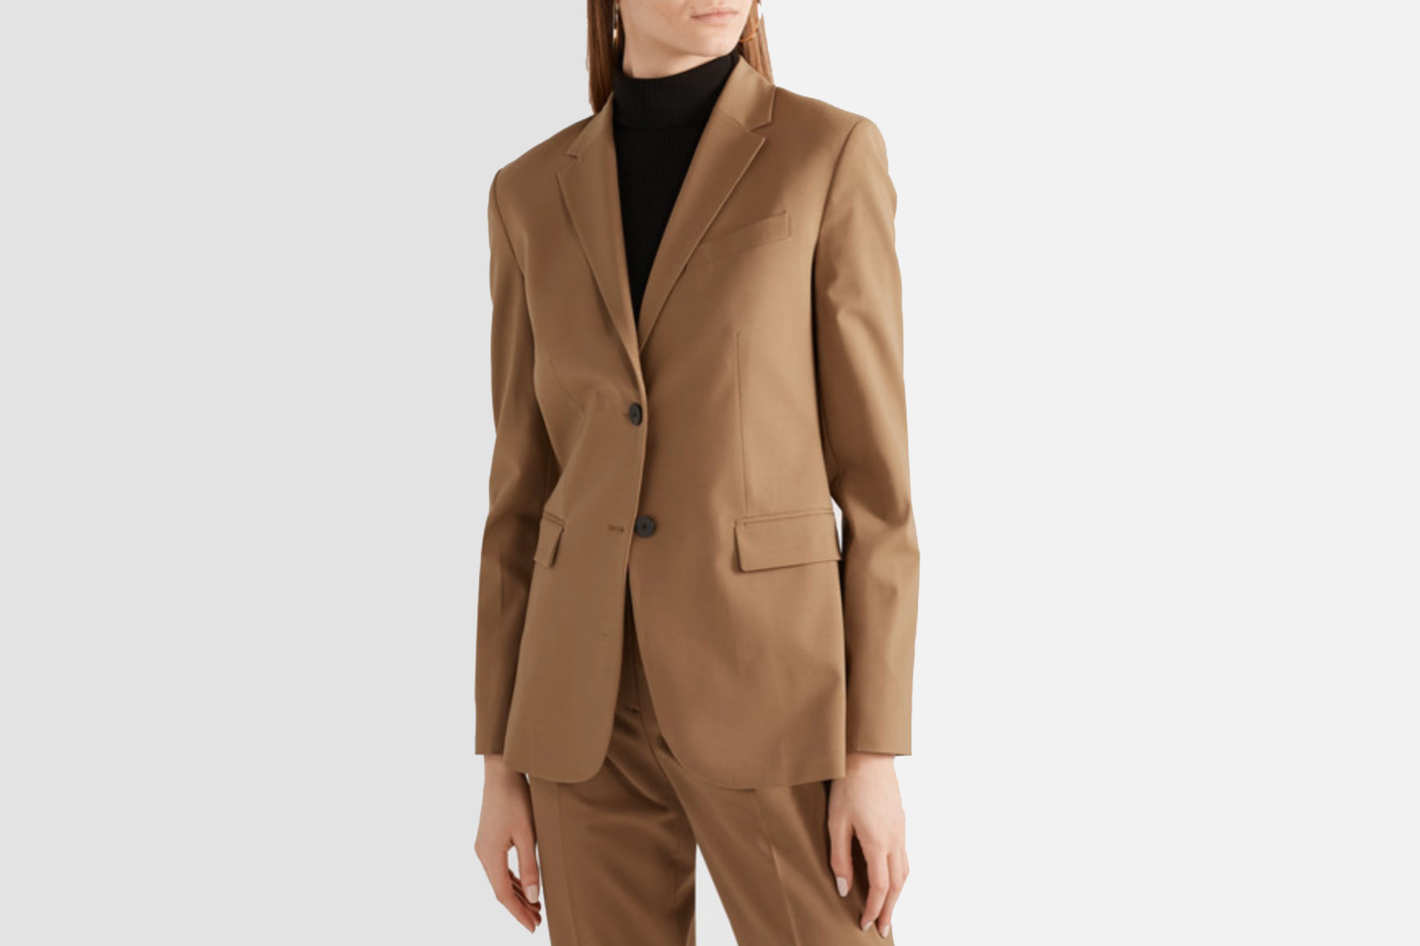 3f7fcd65041 The 15 Best Work Blazers for the Professional Woman, 2018